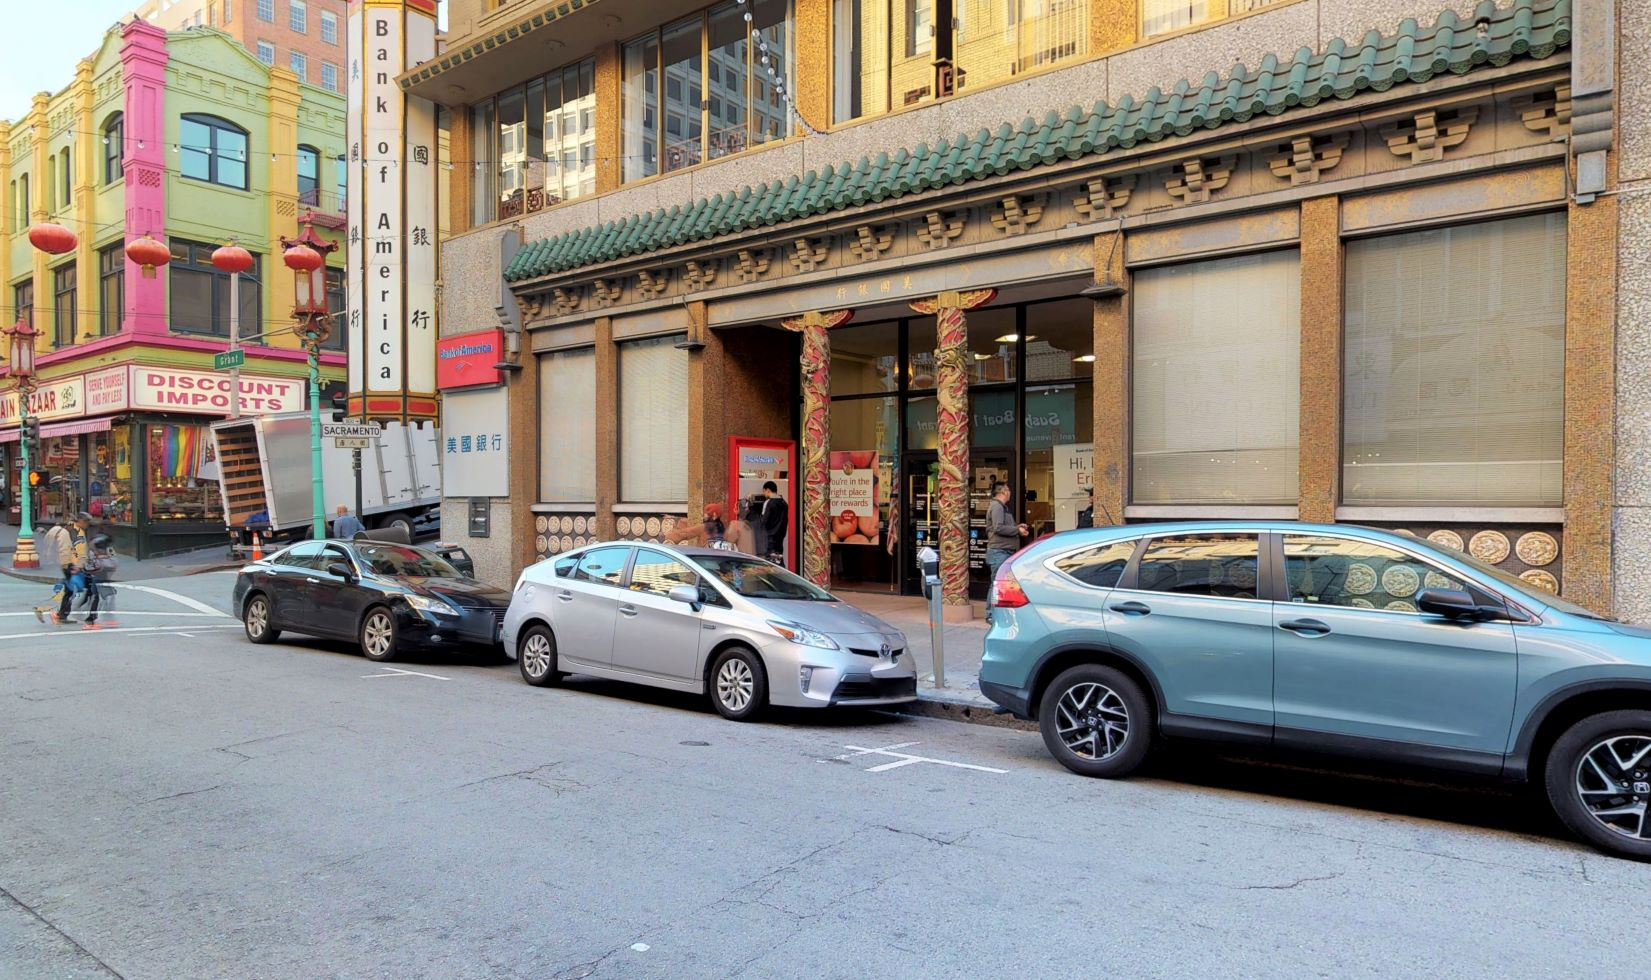 Bank of America financial center with walk-up ATM | 701 Grant Ave, San Francisco, CA 94108